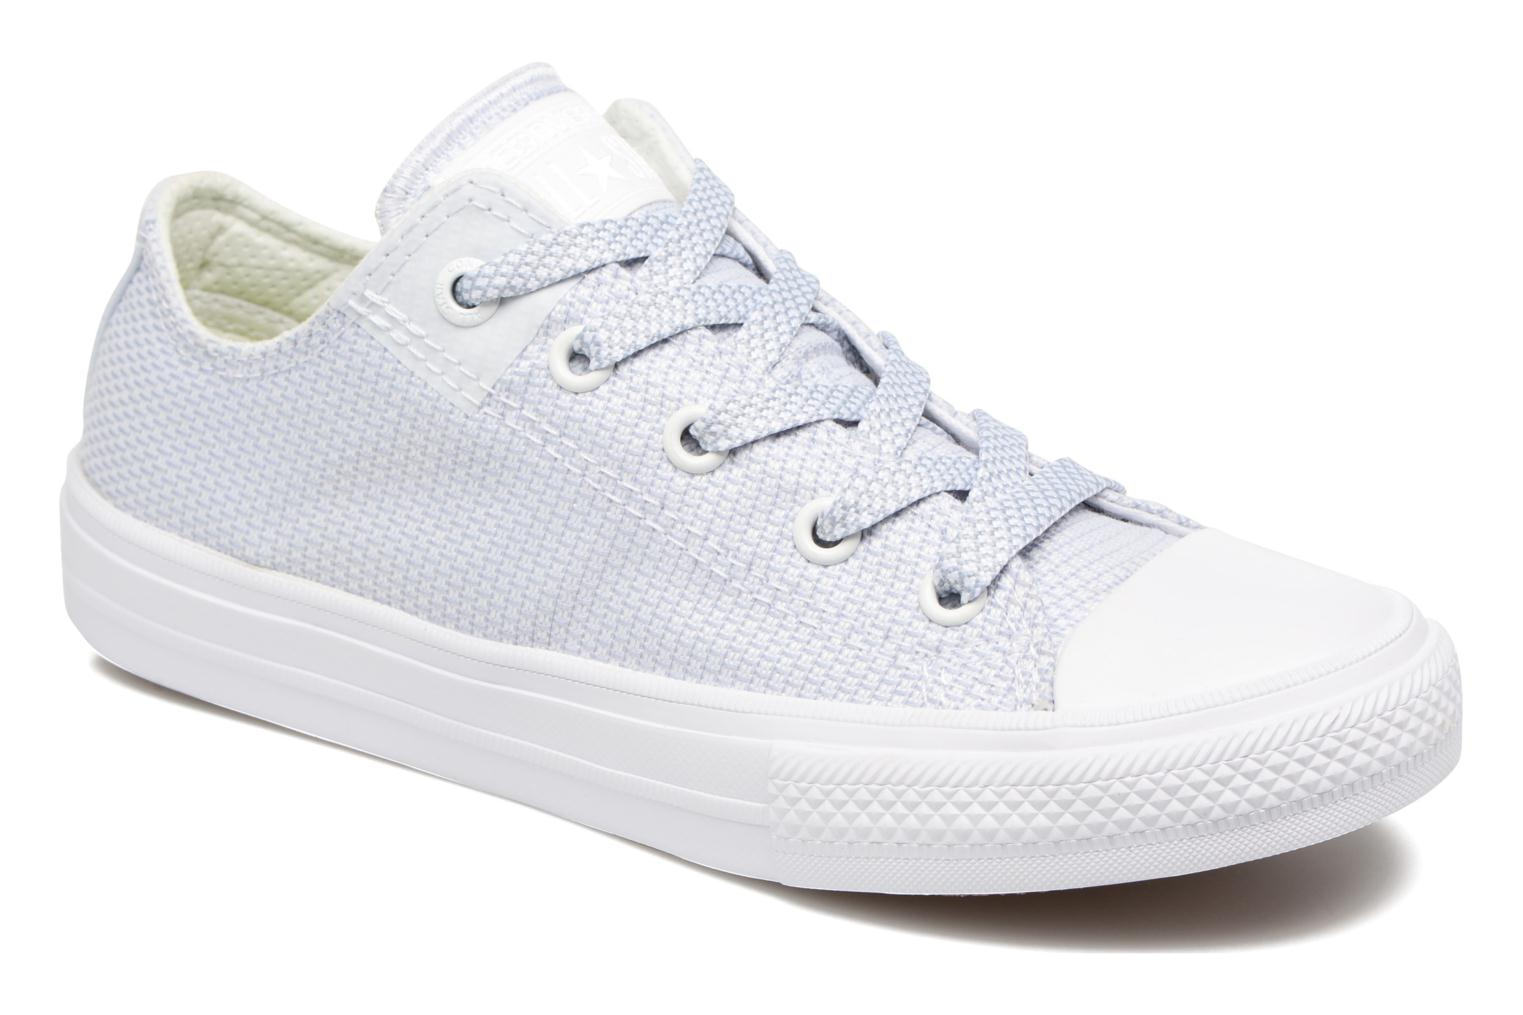 Chuck Taylor All Star II Ox White/Blue Granite/White